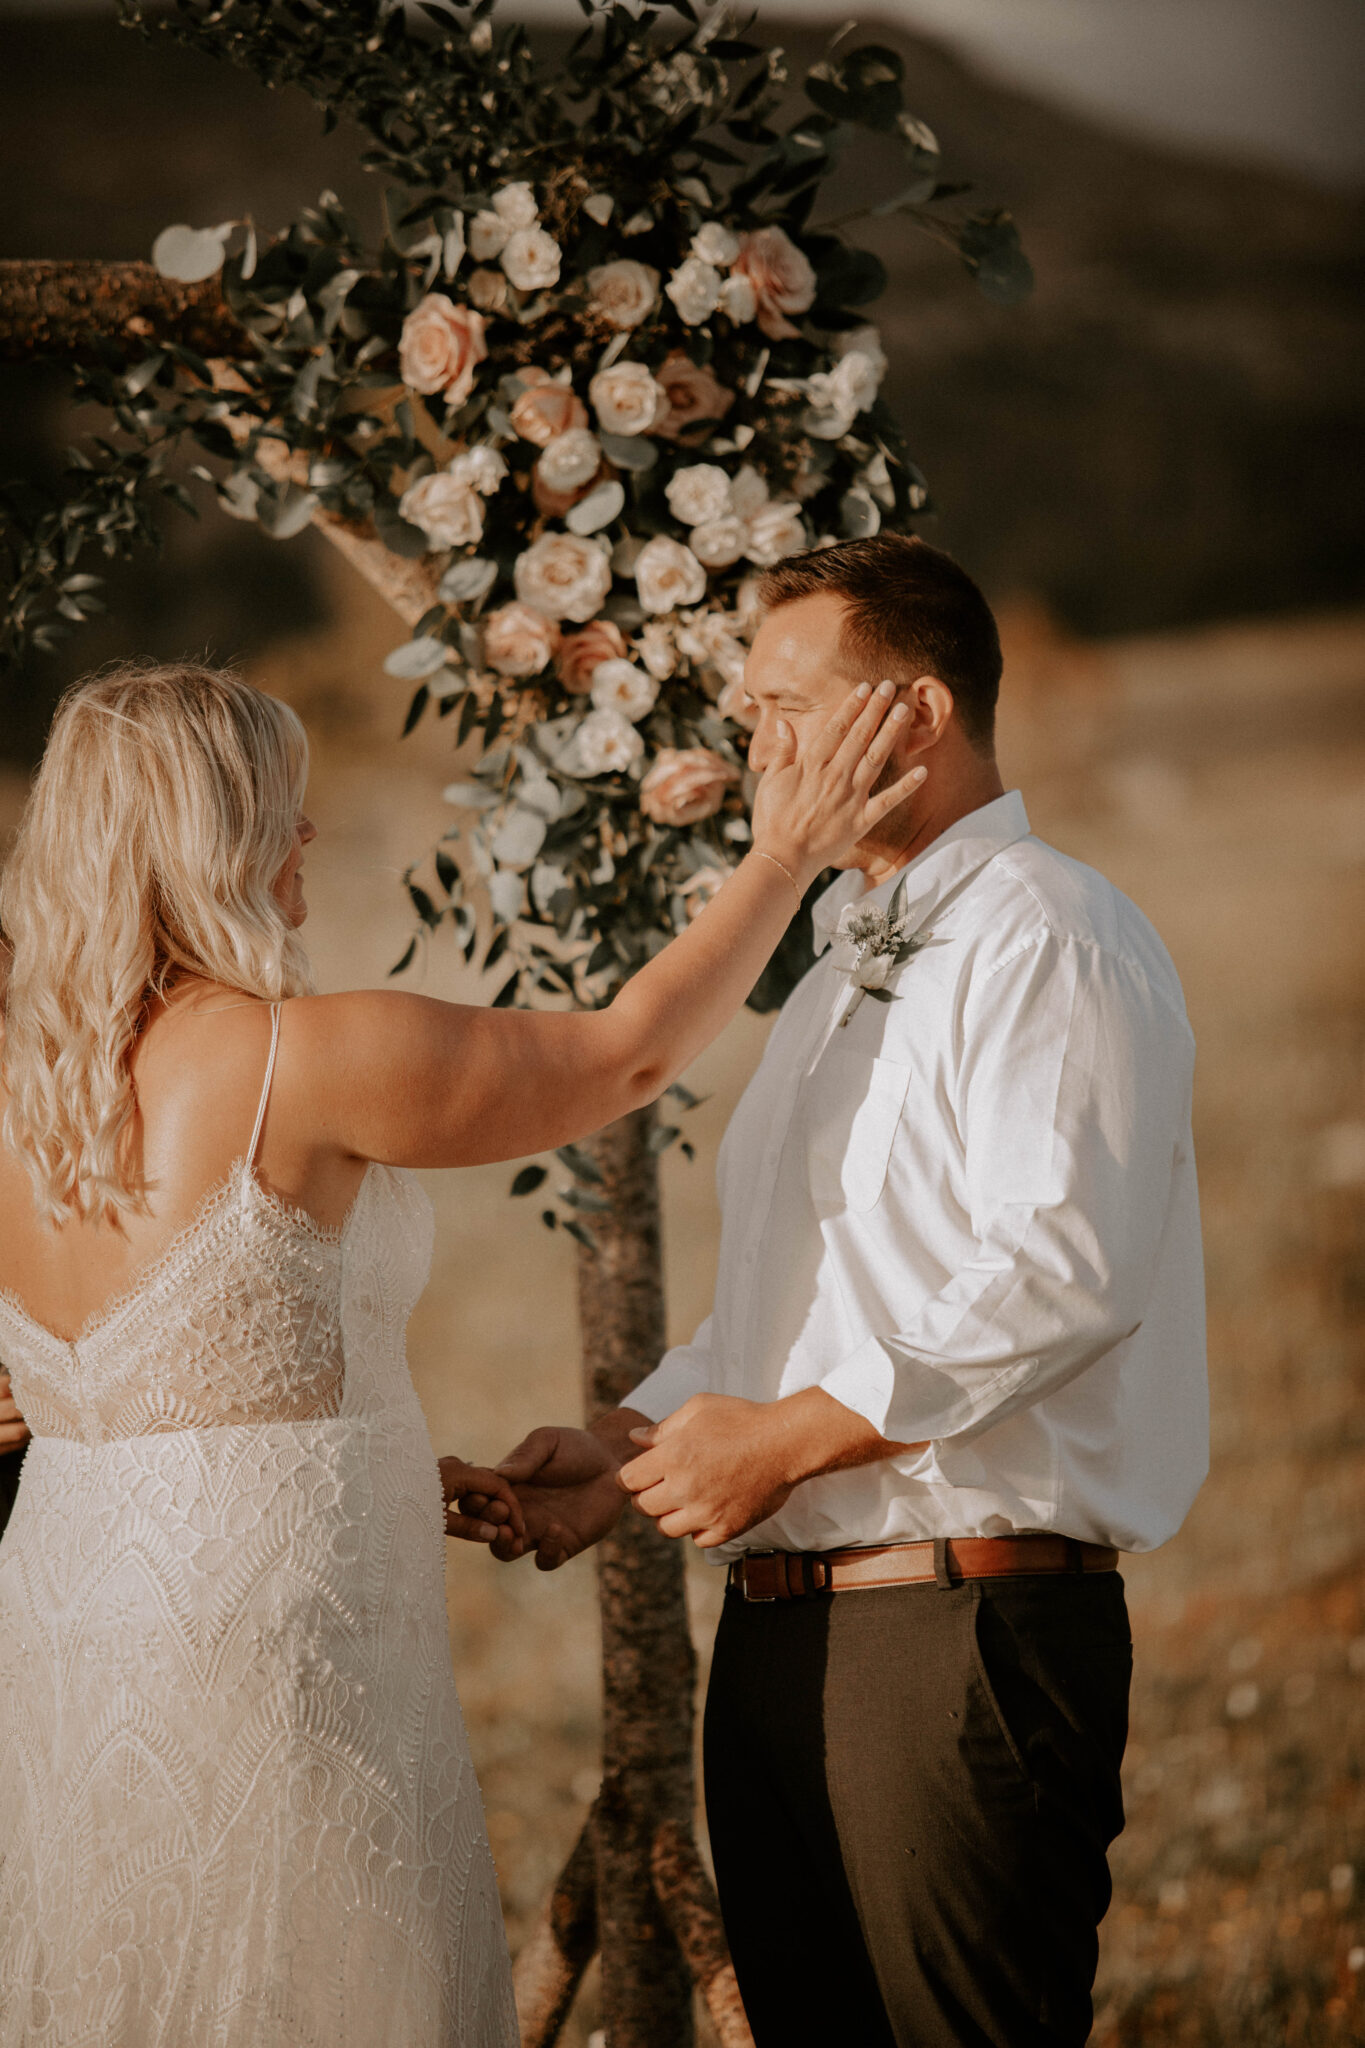 wyoming wedding officiant